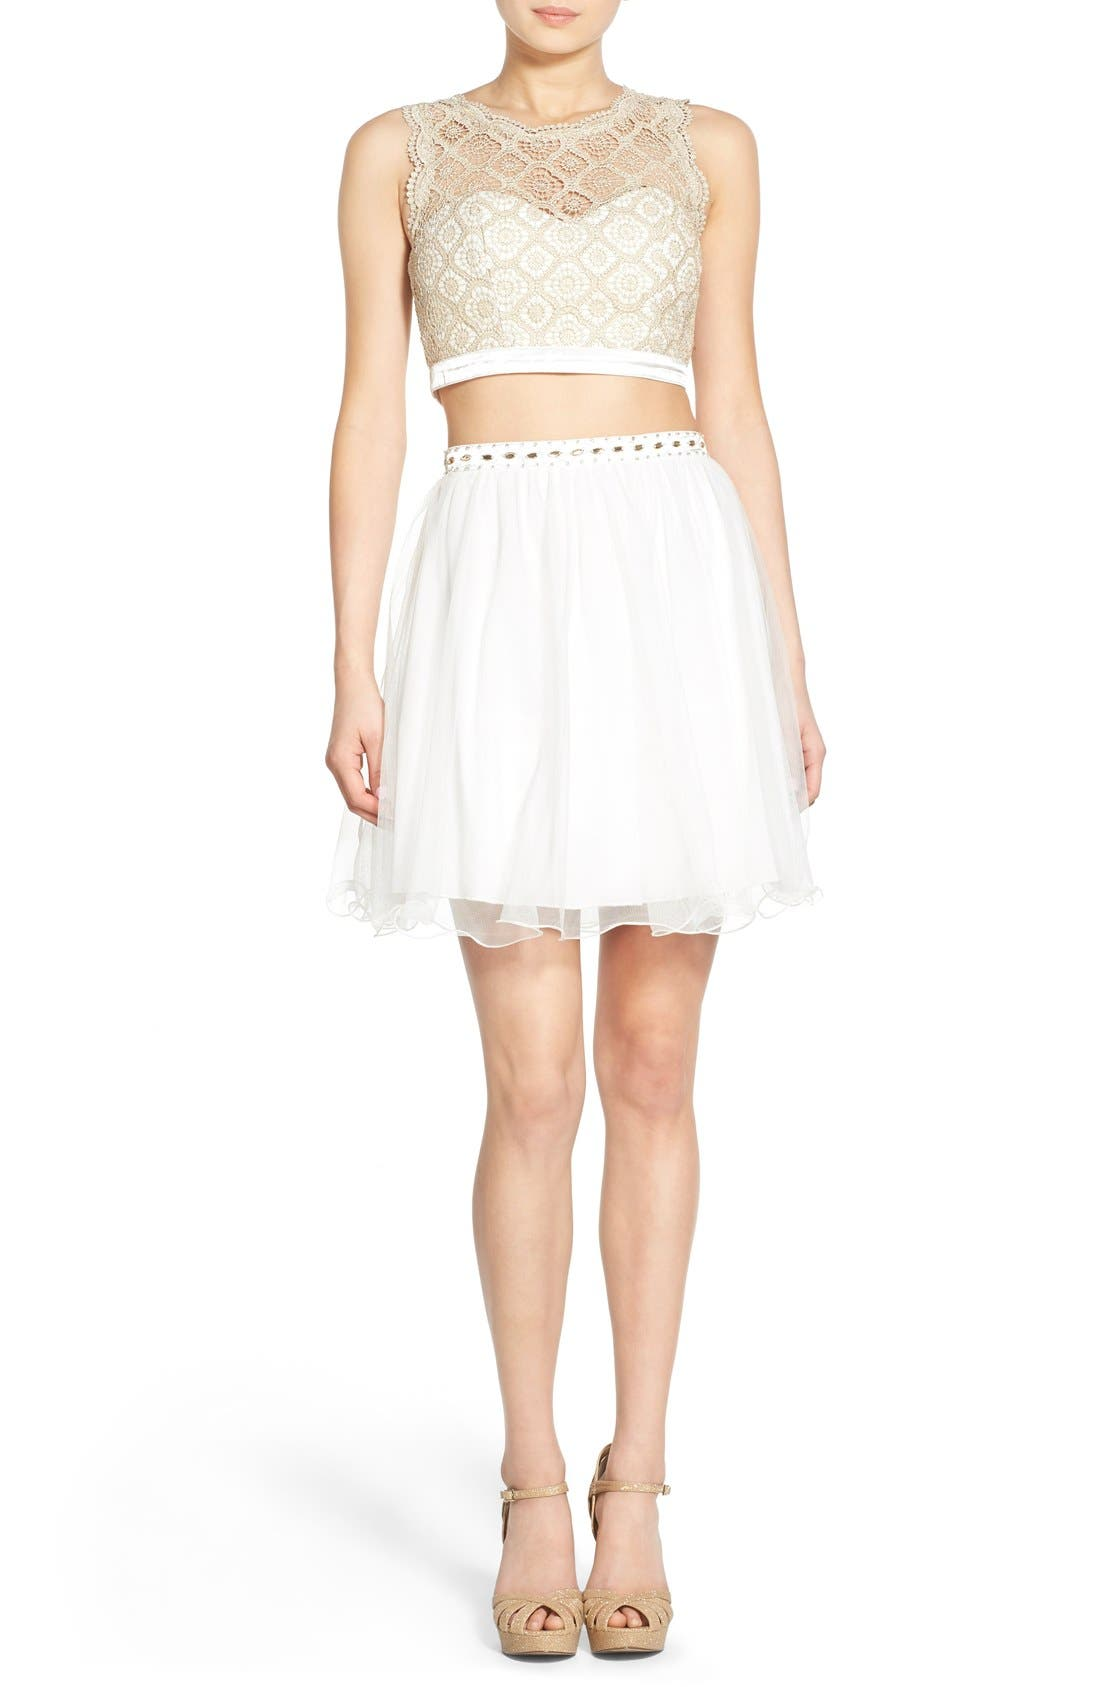 Alternate Image 1 Selected - Sequin Hearts Crochet Lace Two-Piece Dress